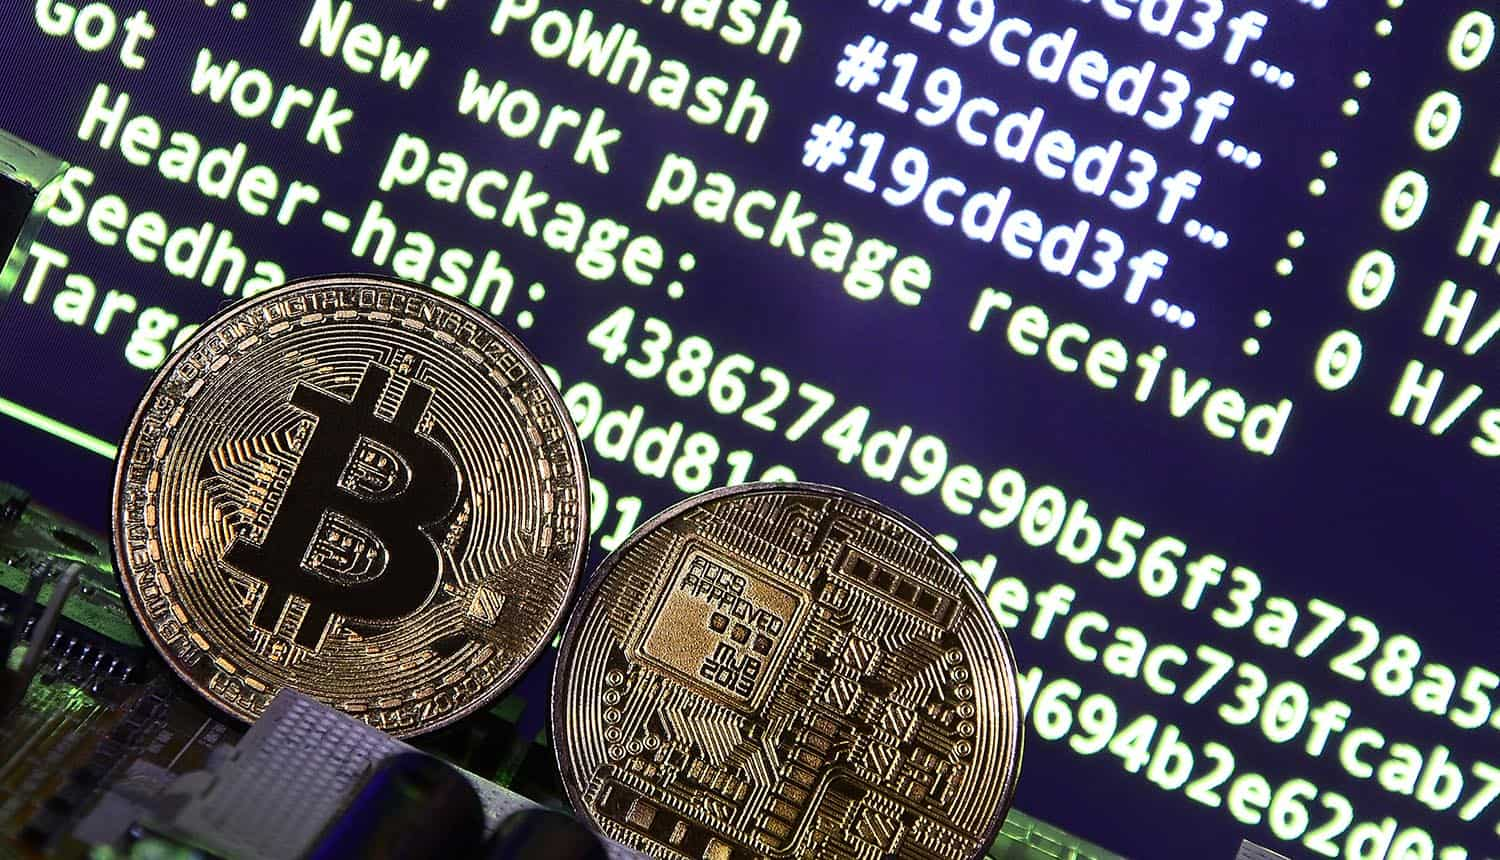 Cryptocurrency and video card on a mining screen showing the cybersecurity threat on cryptocurrency